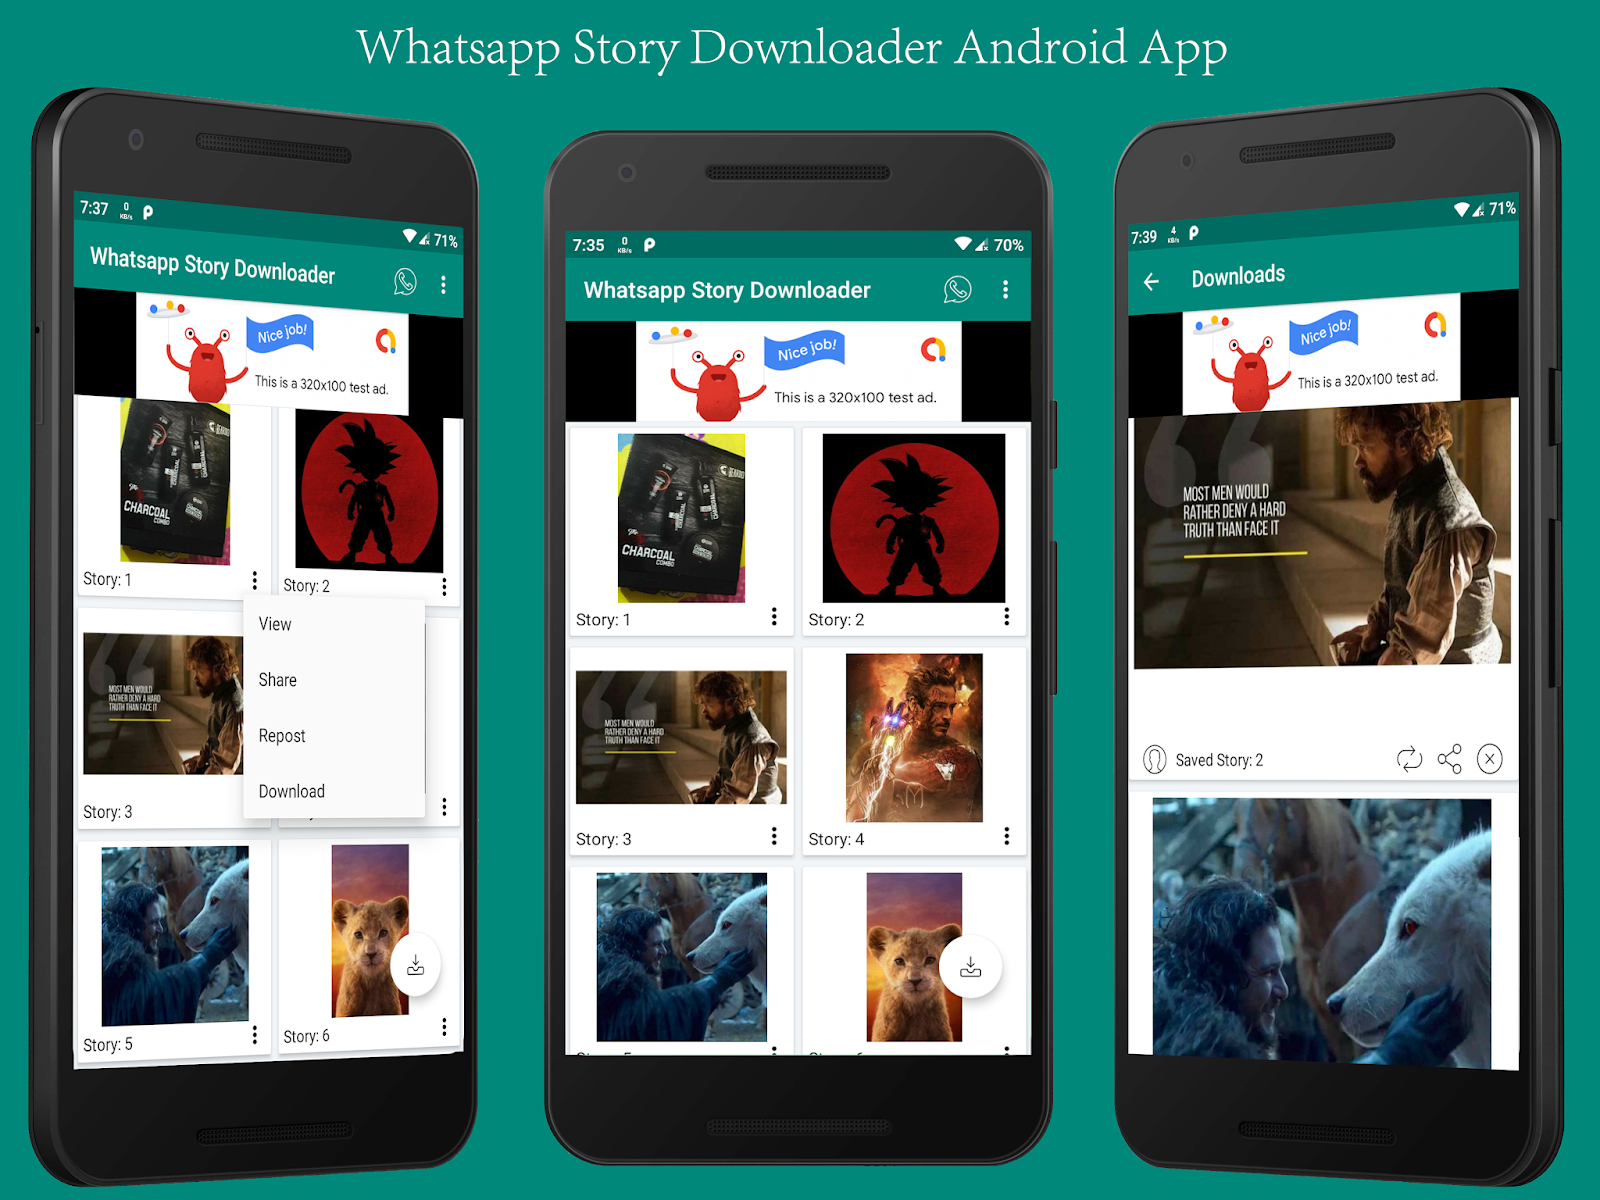 Whatsapp Story Dowloader Android App with Admob Integration - 1